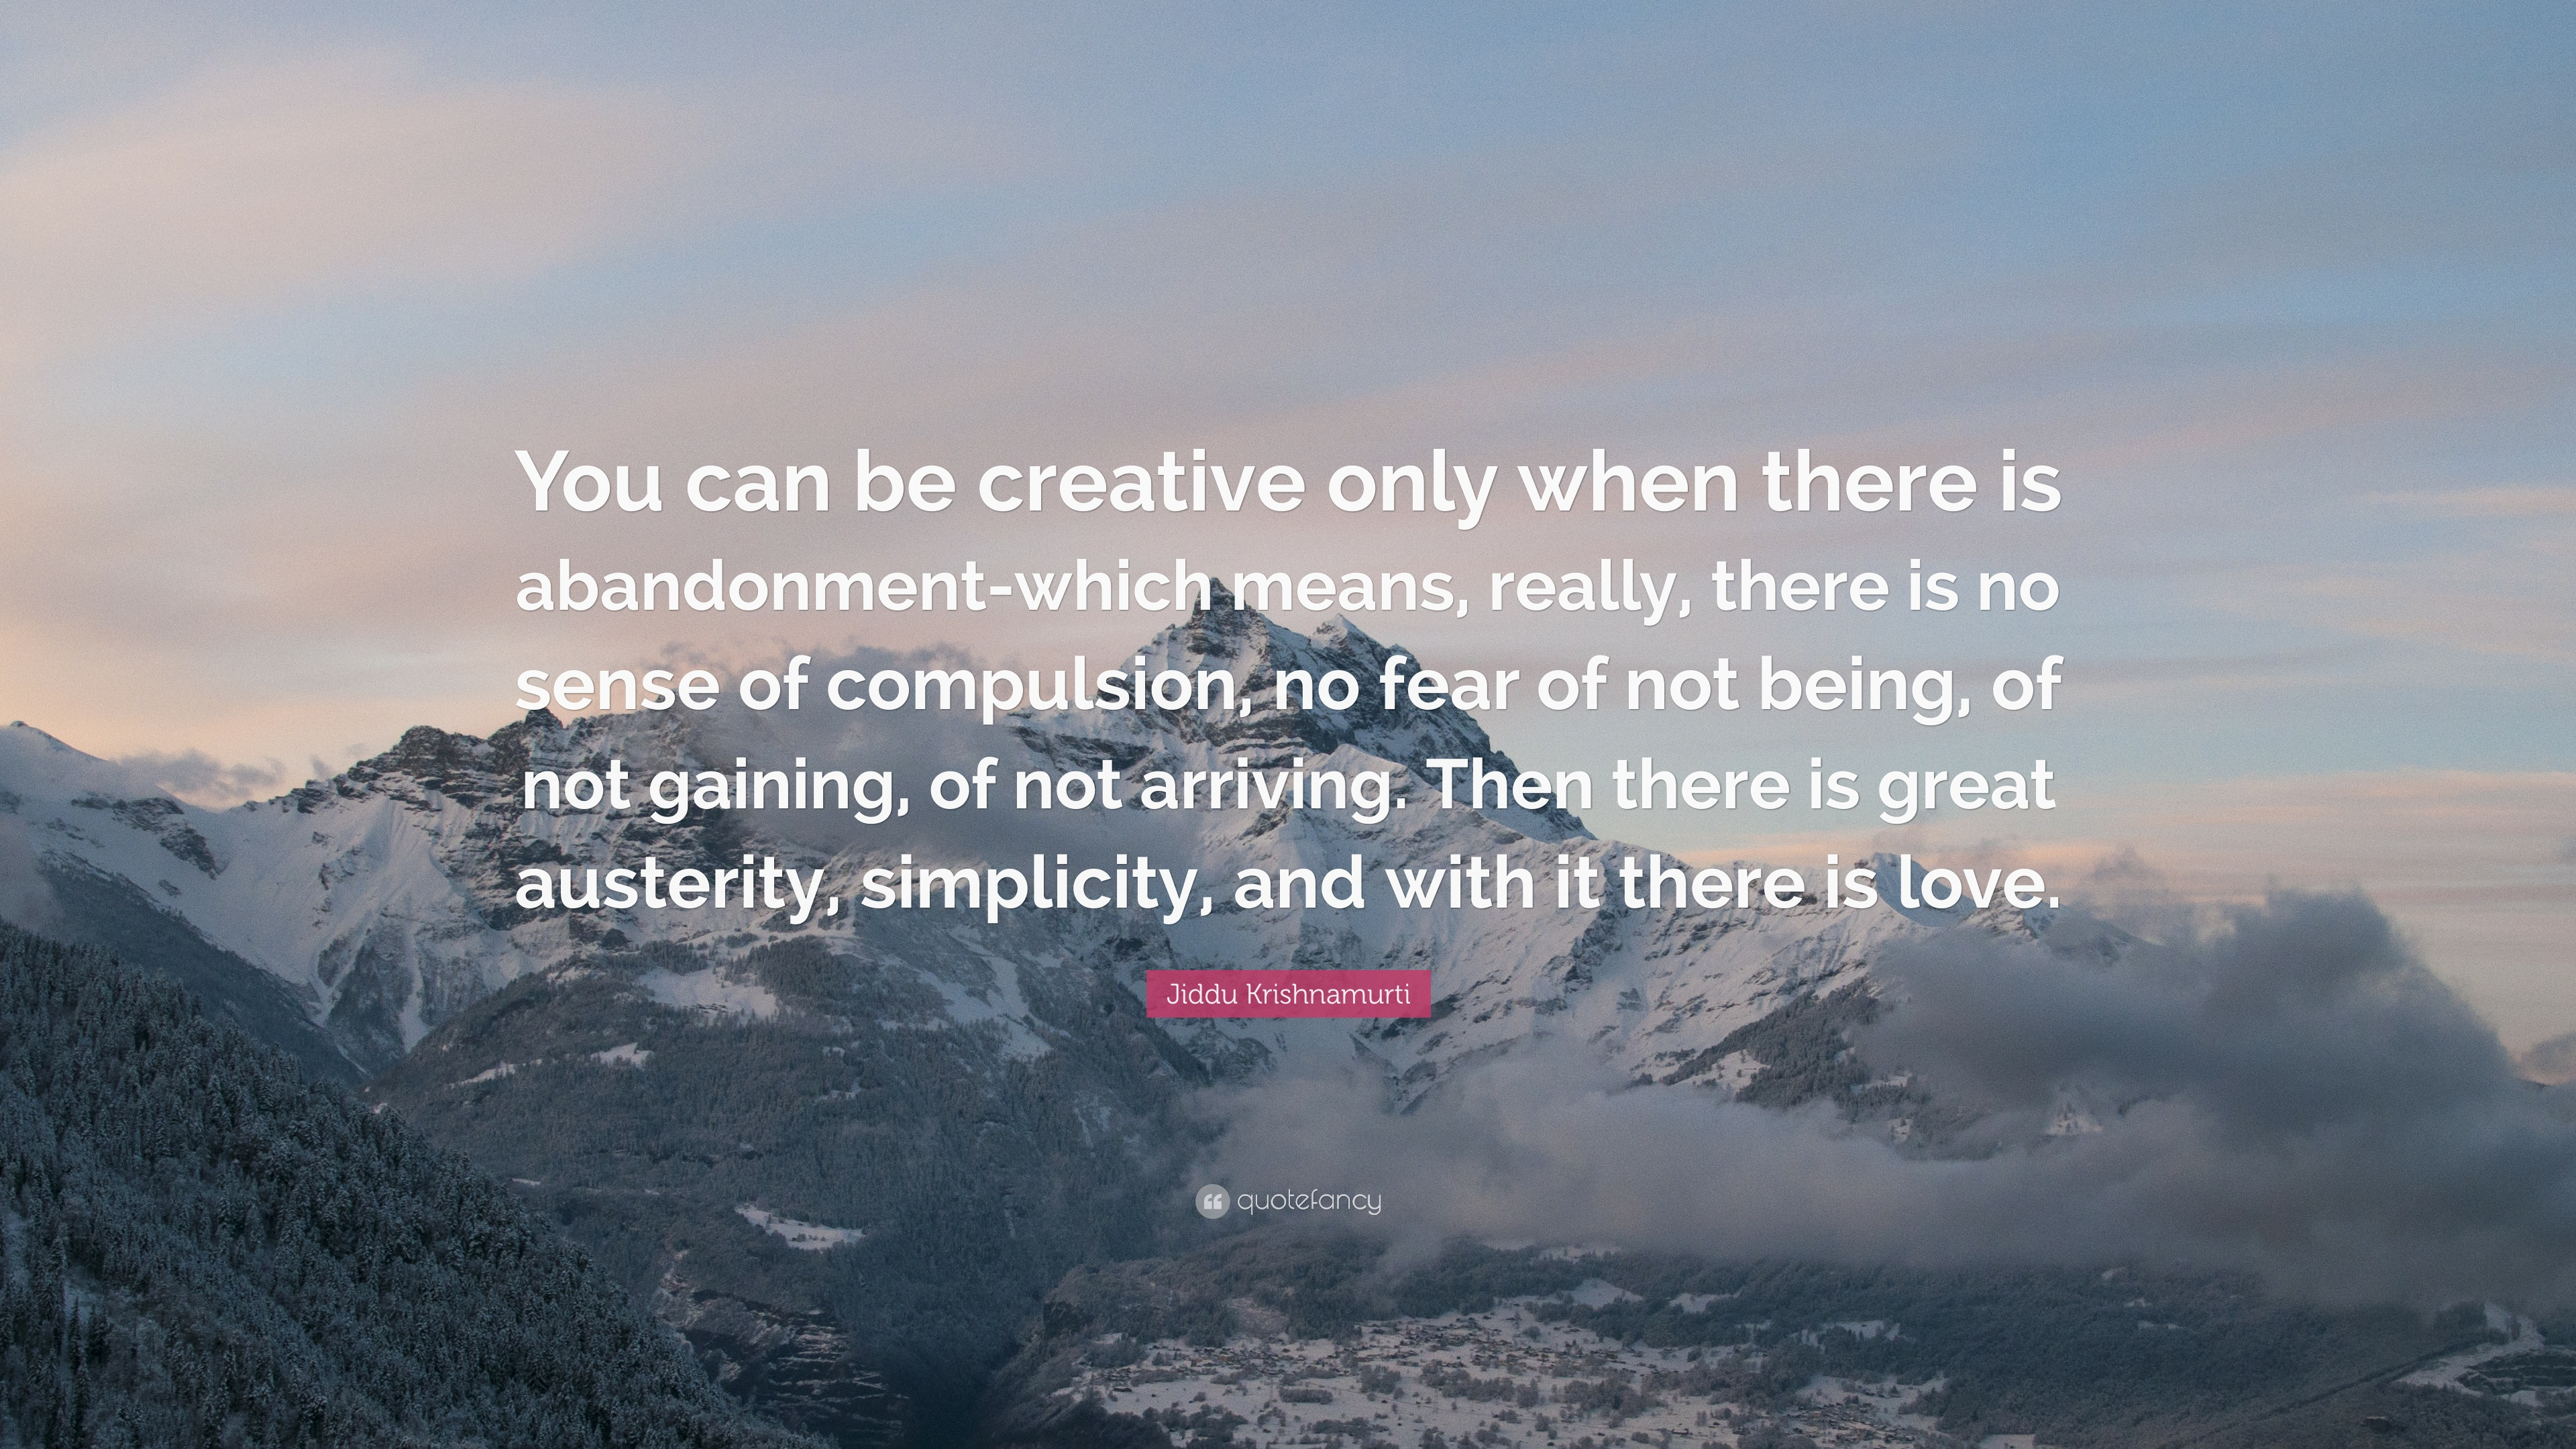 Jiddu Krishnamurti Quote You Can Be Creative Only When There Is Abandonment Which Means Really There Is No Sense Of Compulsion No Fear Of Not 7 Wallpapers Quotefancy